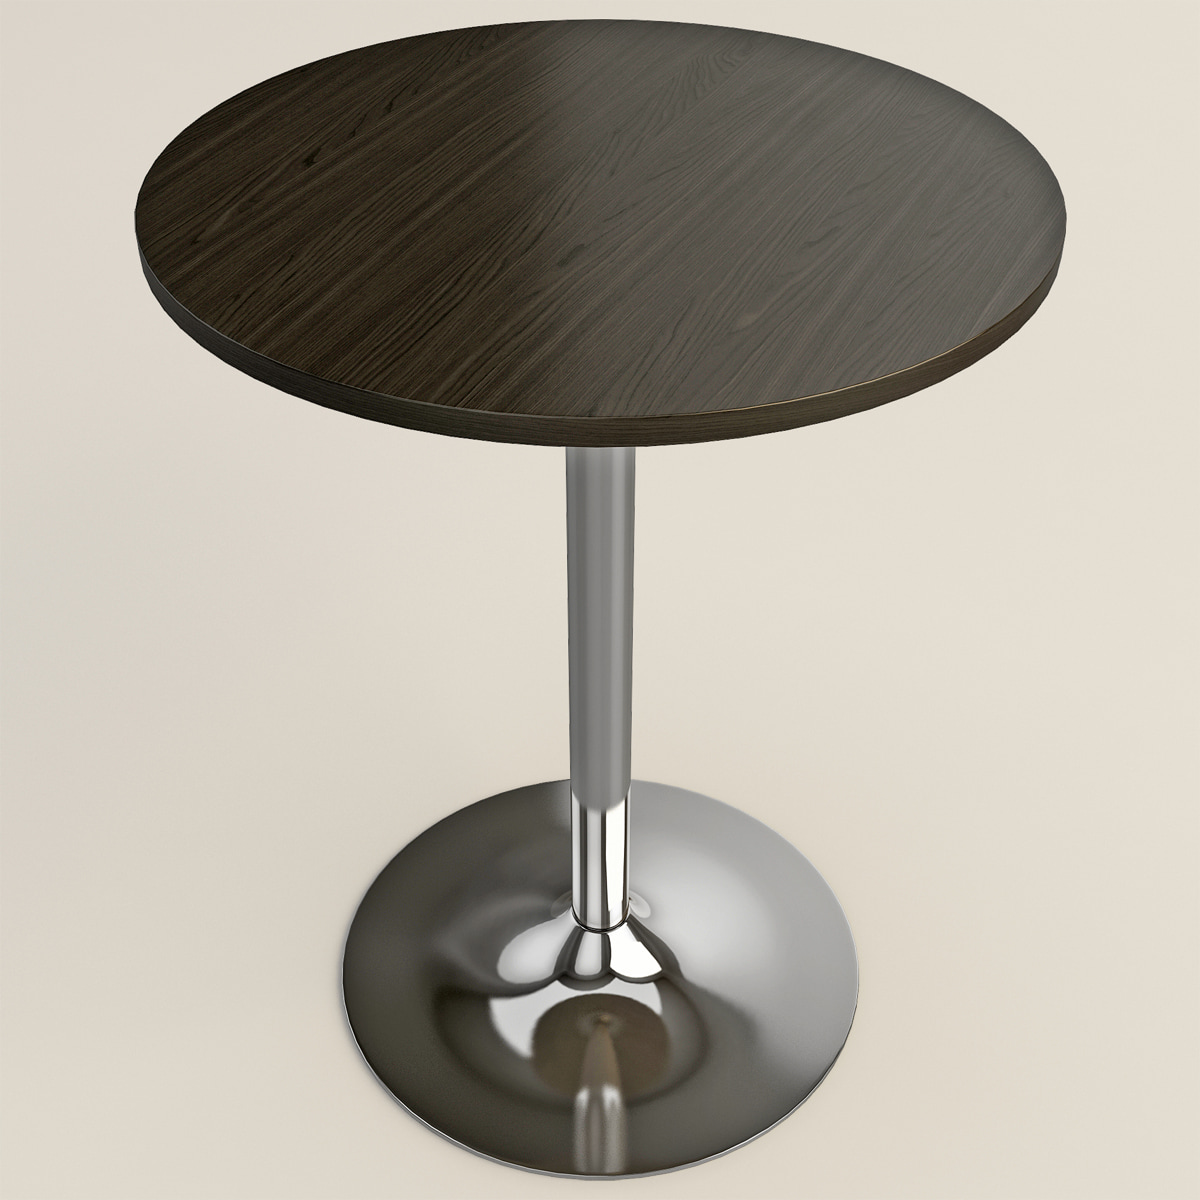 197452_Winsome_Wood_Black_and_Chrome_Pub_Table_001.jpg